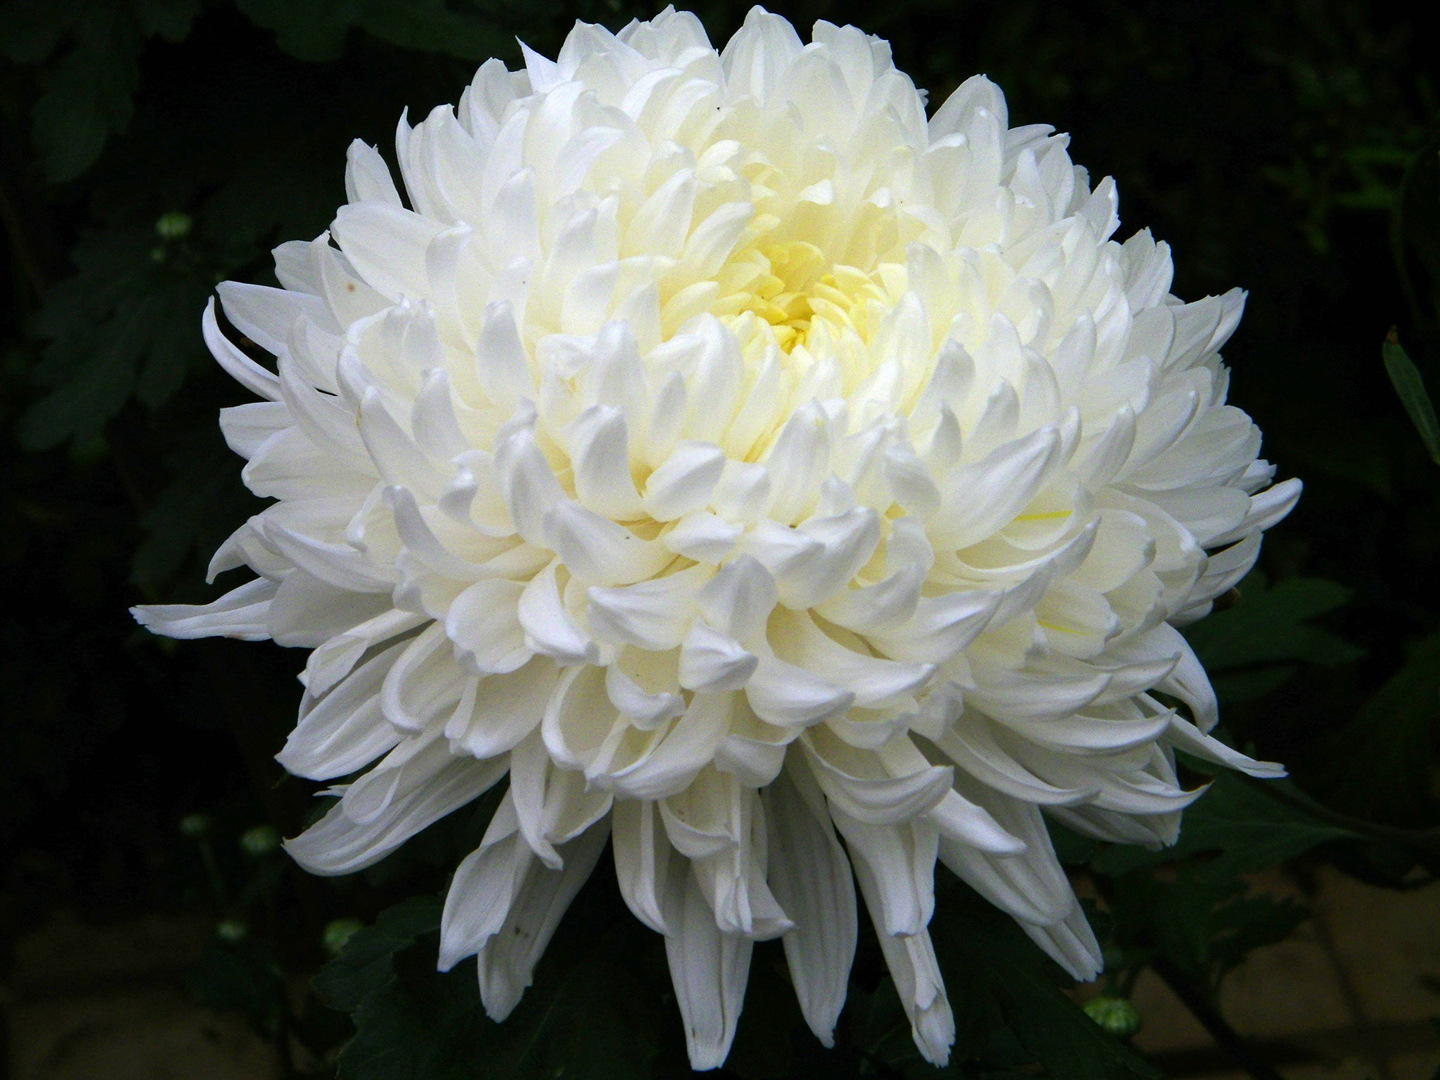 White chrysanths